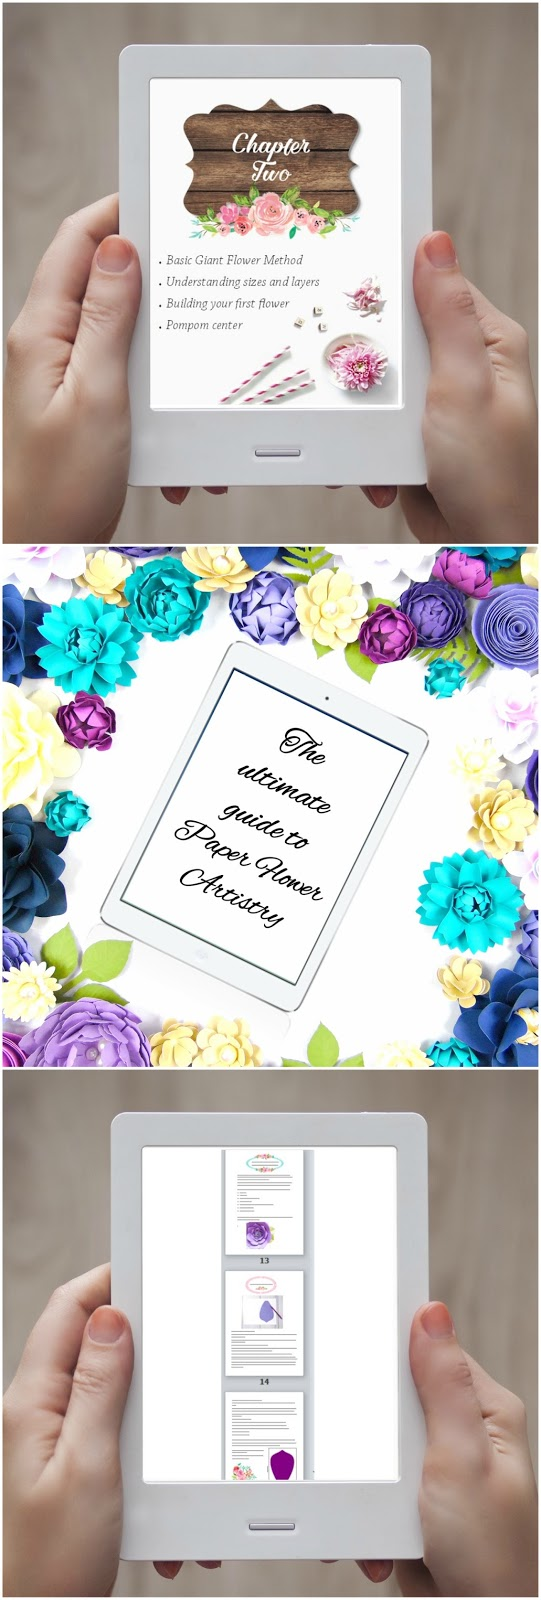 How to make paper flowers step by step. Paper flower ebook. Flower templates and tutorials.